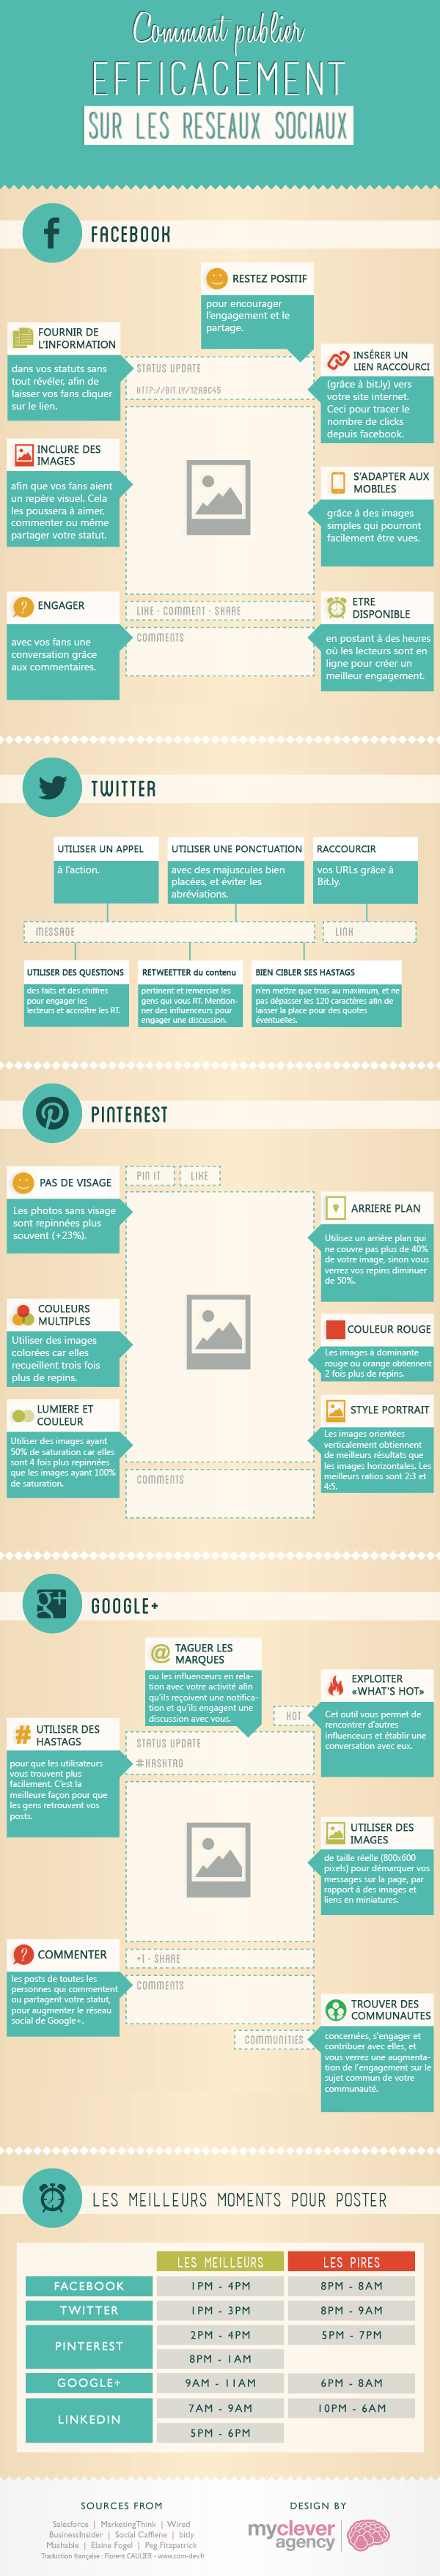 PerfectPost-Infographic-7-FR